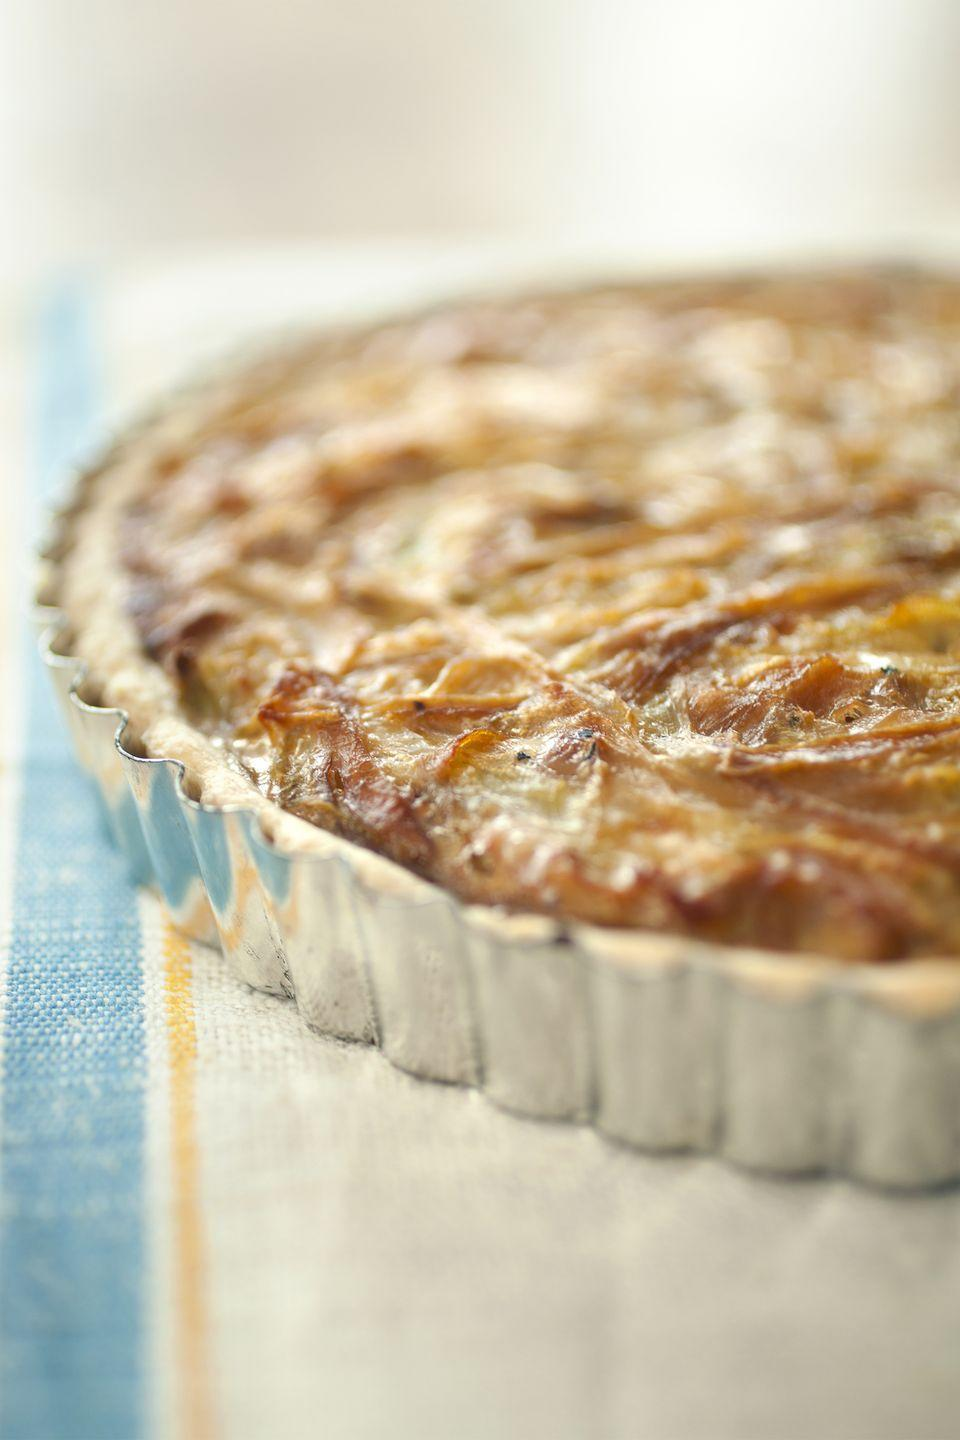 """<p>Rich Gruyère cheese and caramelized onions top this flaky pastry.</p><p><strong><a href=""""https://www.countryliving.com/food-drinks/recipes/a1067/caramelized-onion-gruyere-tarts-3172/"""" rel=""""nofollow noopener"""" target=""""_blank"""" data-ylk=""""slk:Get the recipe"""" class=""""link rapid-noclick-resp"""">Get the recipe</a>.</strong></p>"""